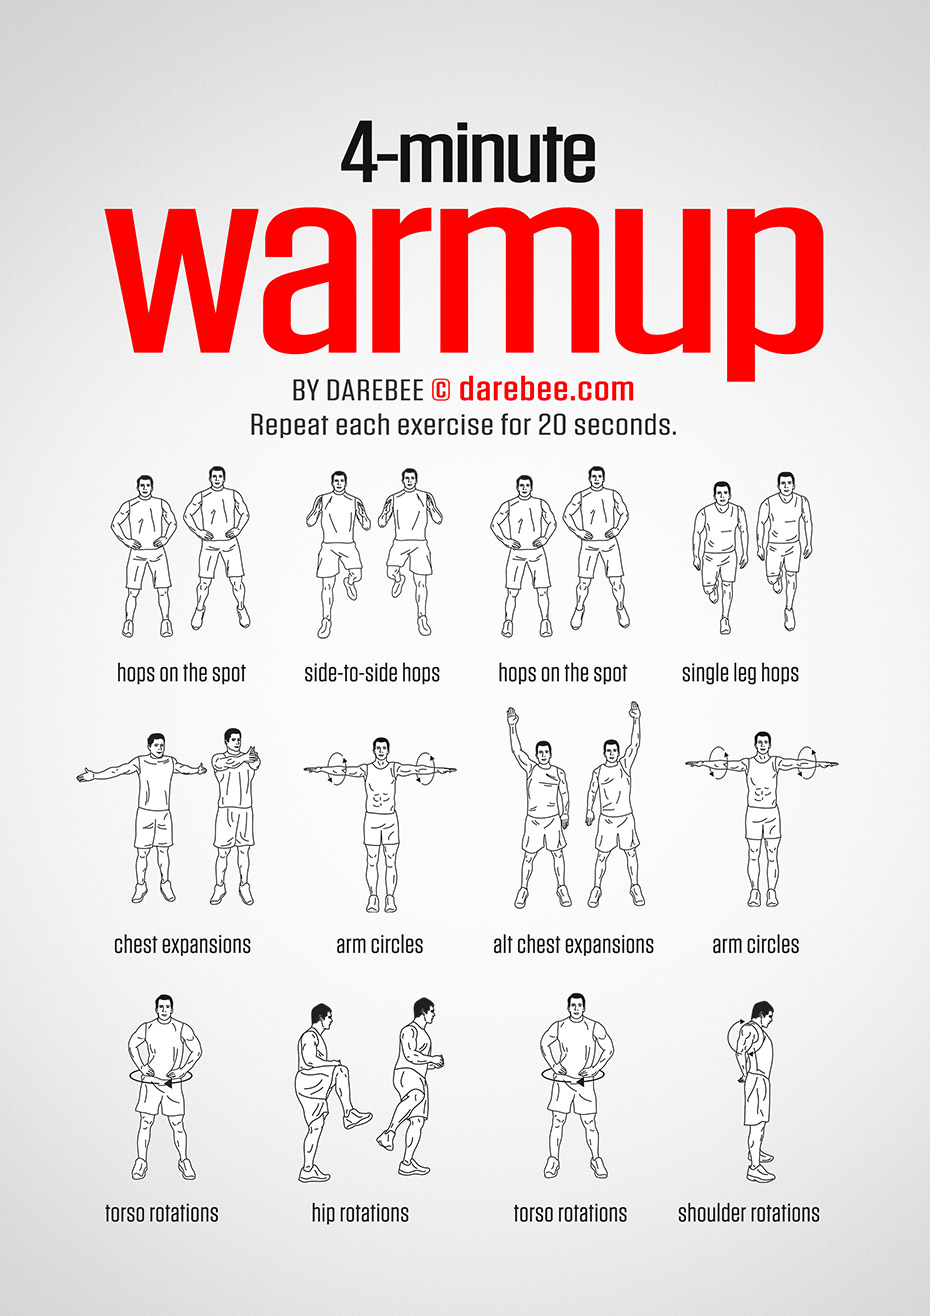 4 minute warmup workout